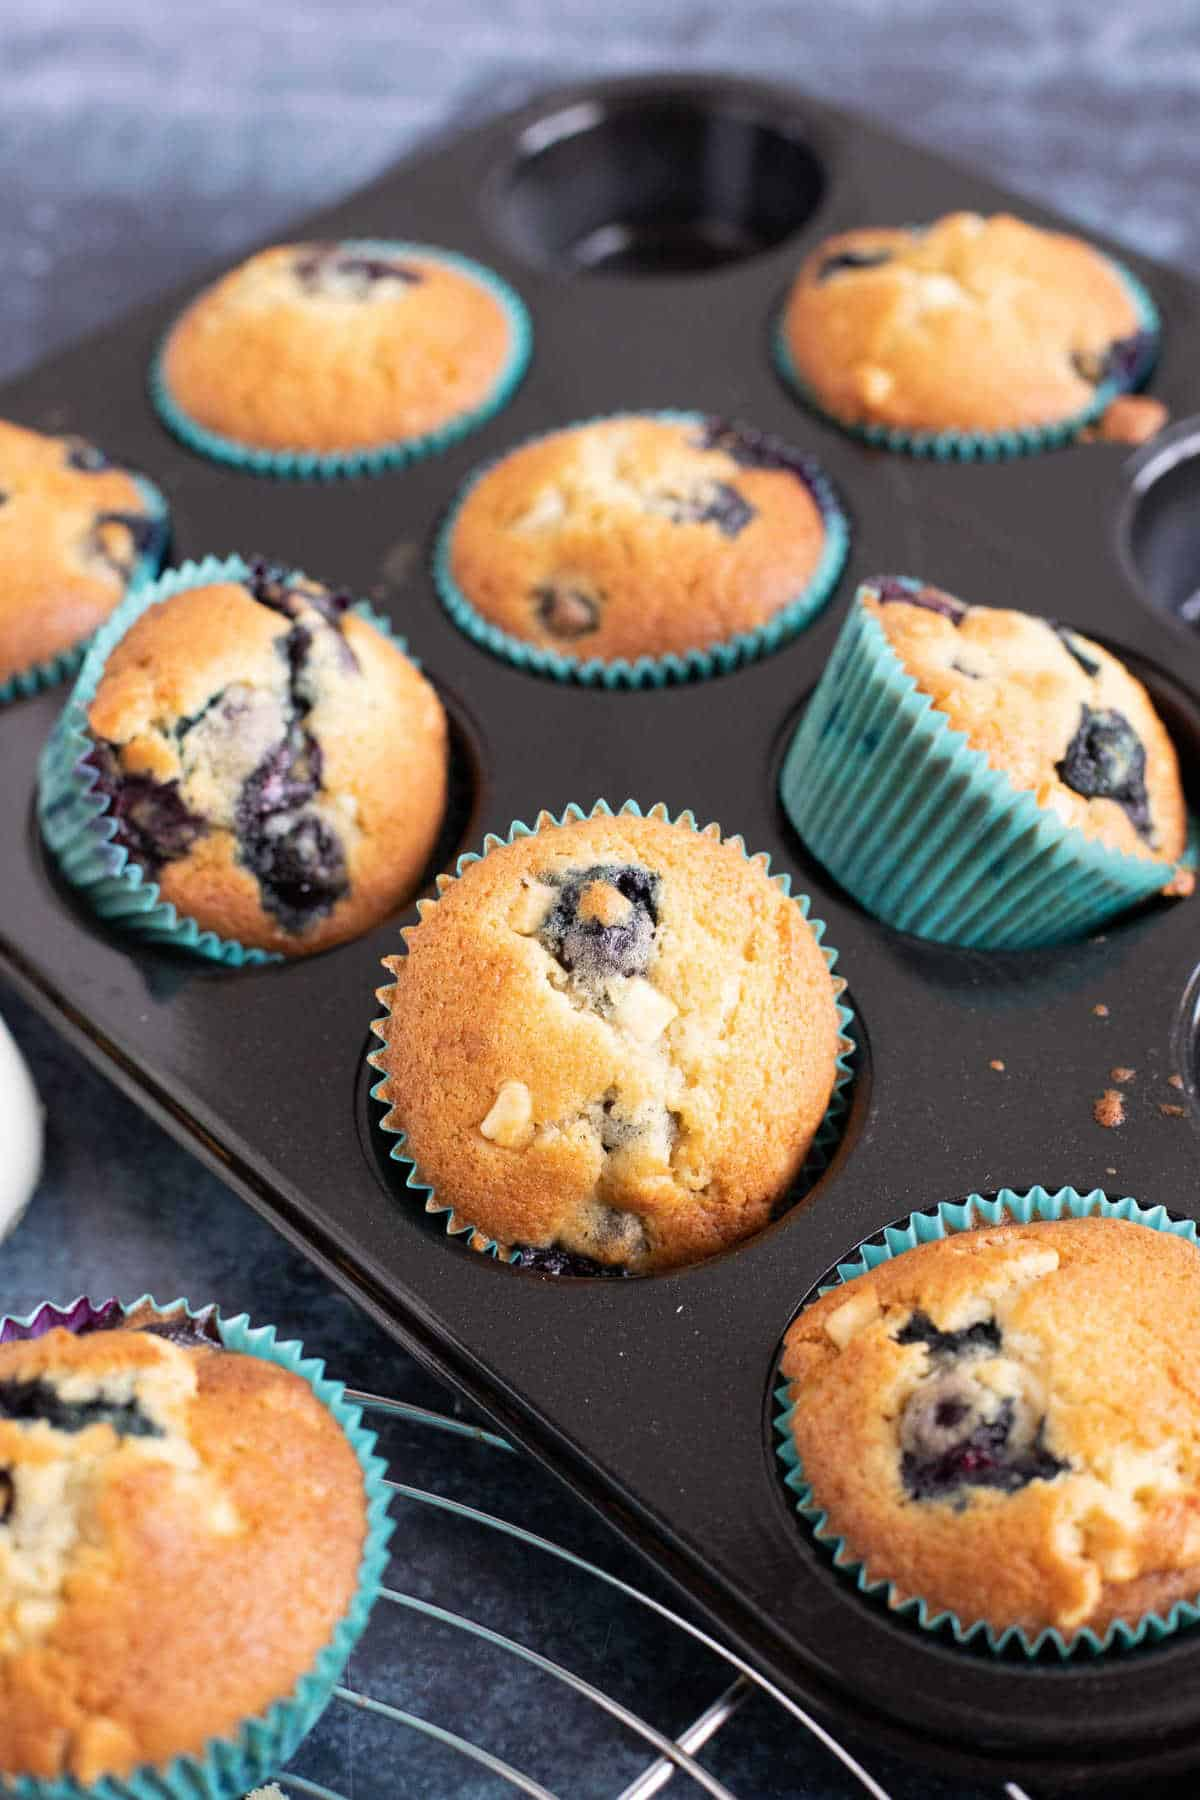 A tray of blueberry muffins with white chocolate chips.